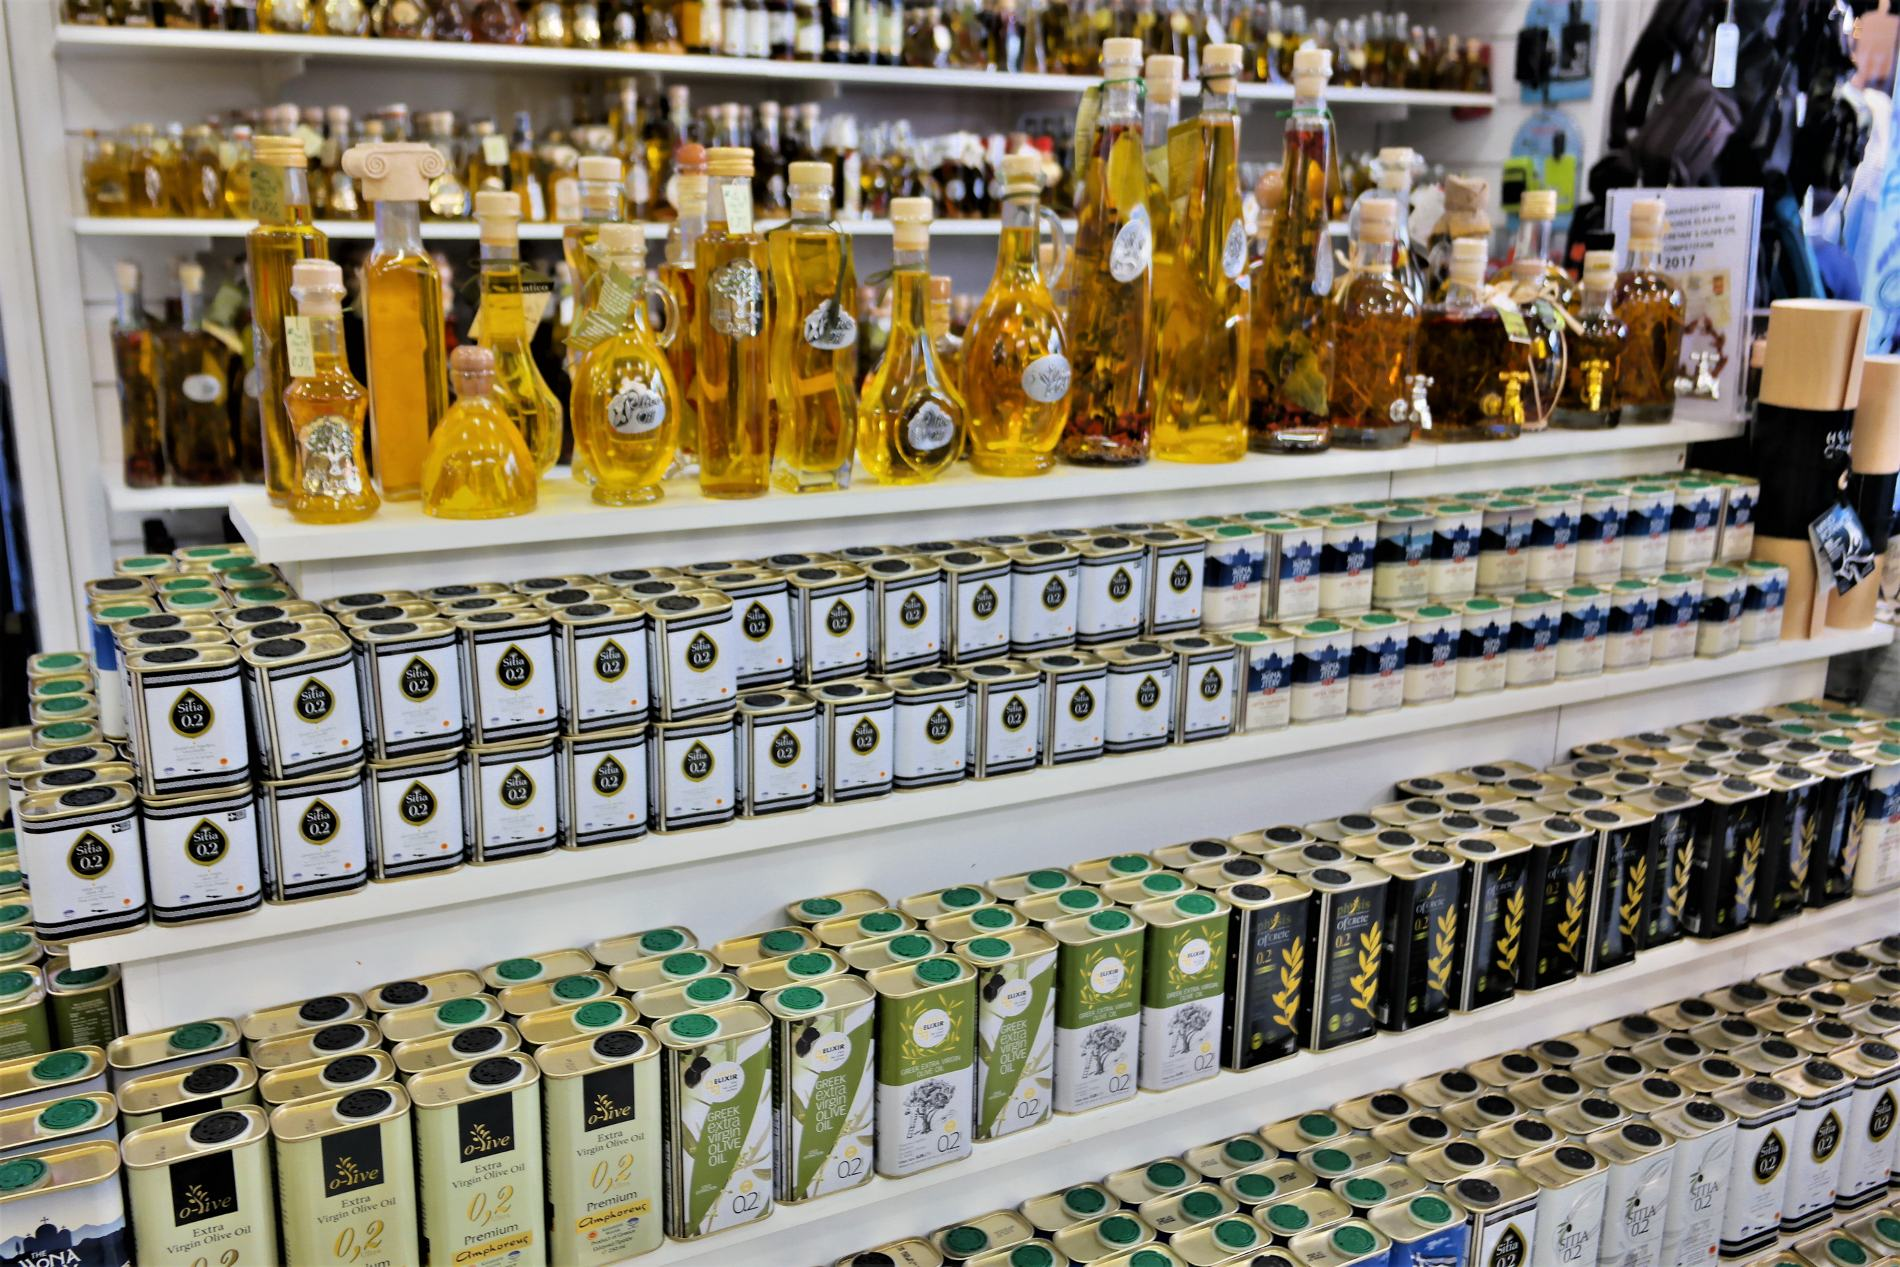 Extra virgin olive oil is one of the top things to buy in Greece. Source: Truevoyagers